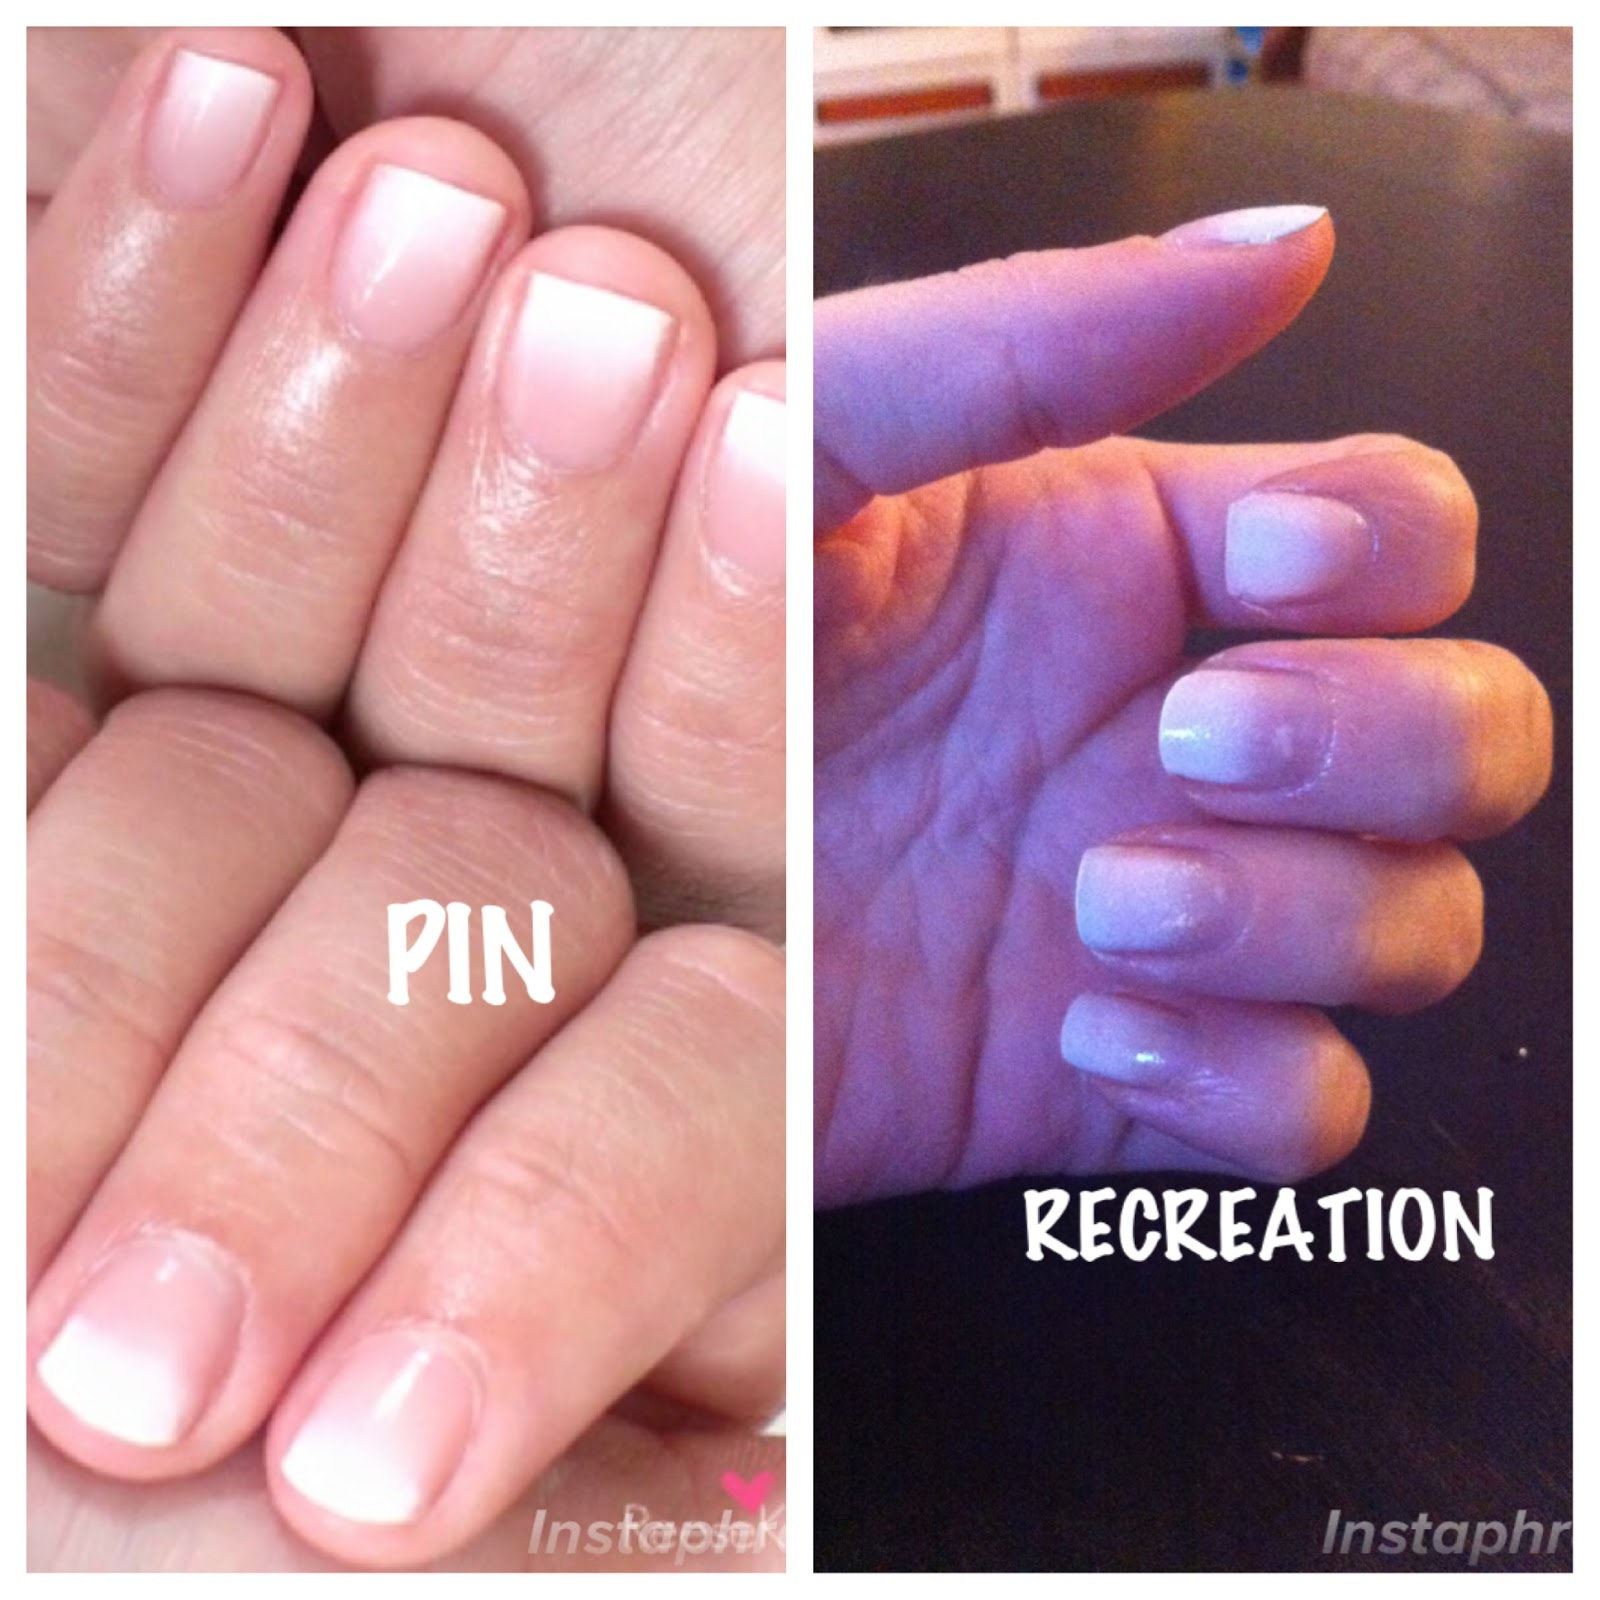 InstaReview_Pinsterest: Ombre French Manicure